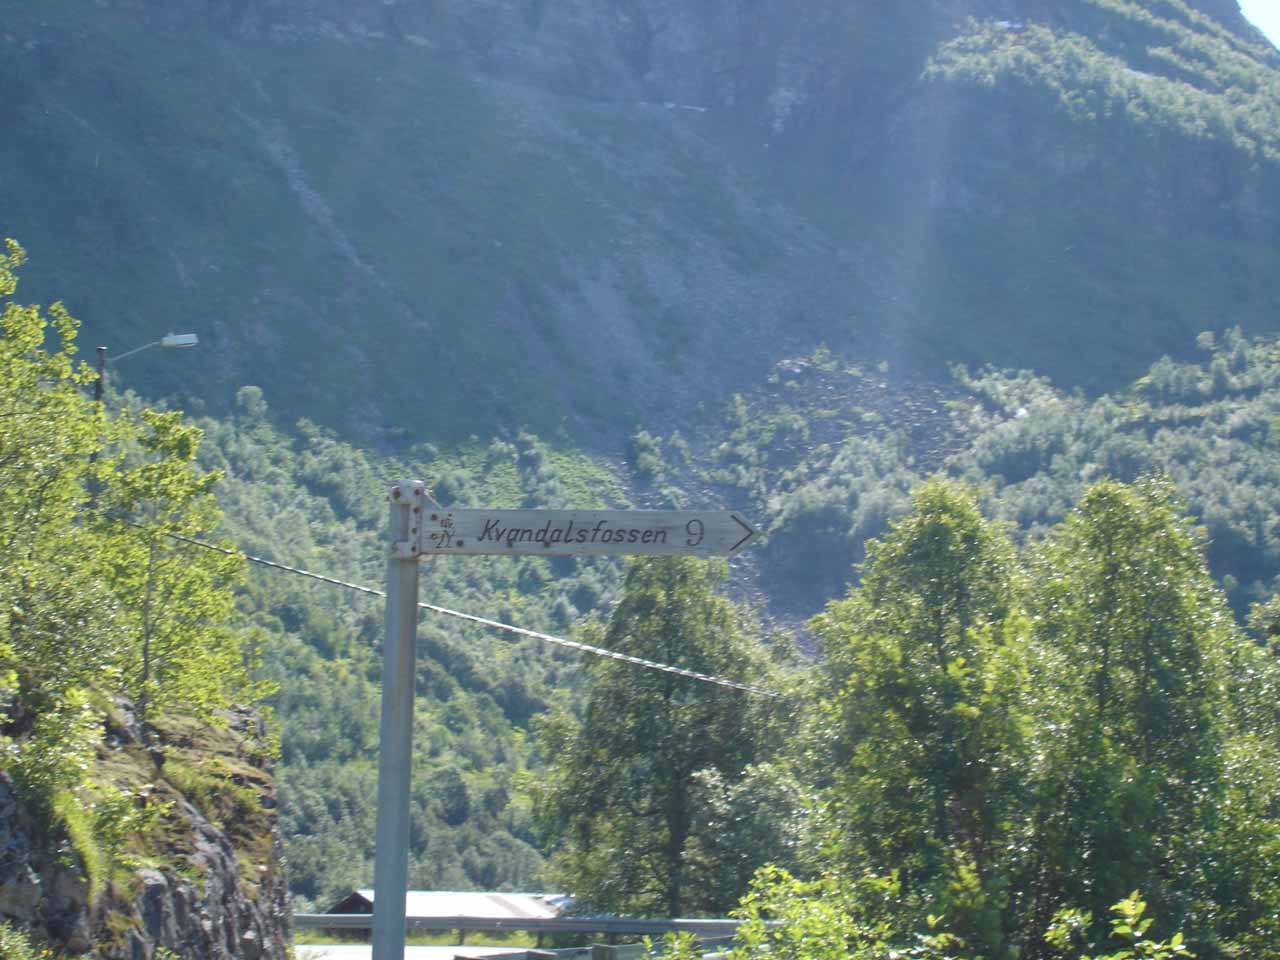 This was the tiny road sign for Kvanndalsfossen at the turnoff from Road 63